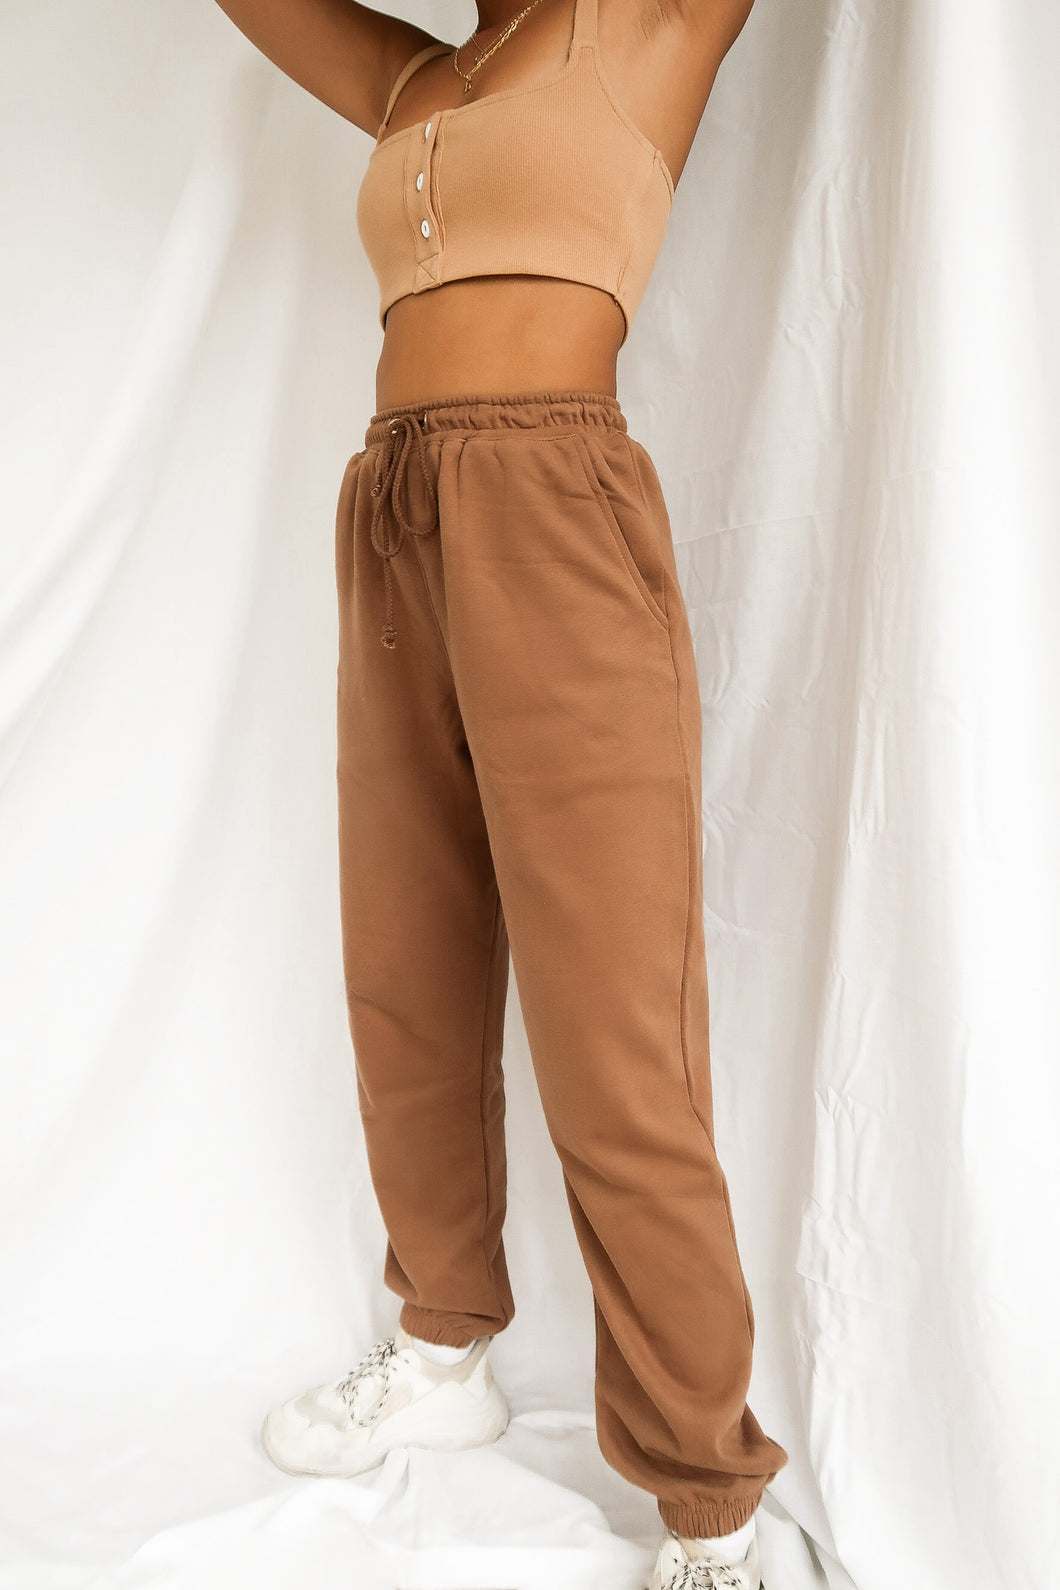 Running Late Jogger Sweatpants – Mocha